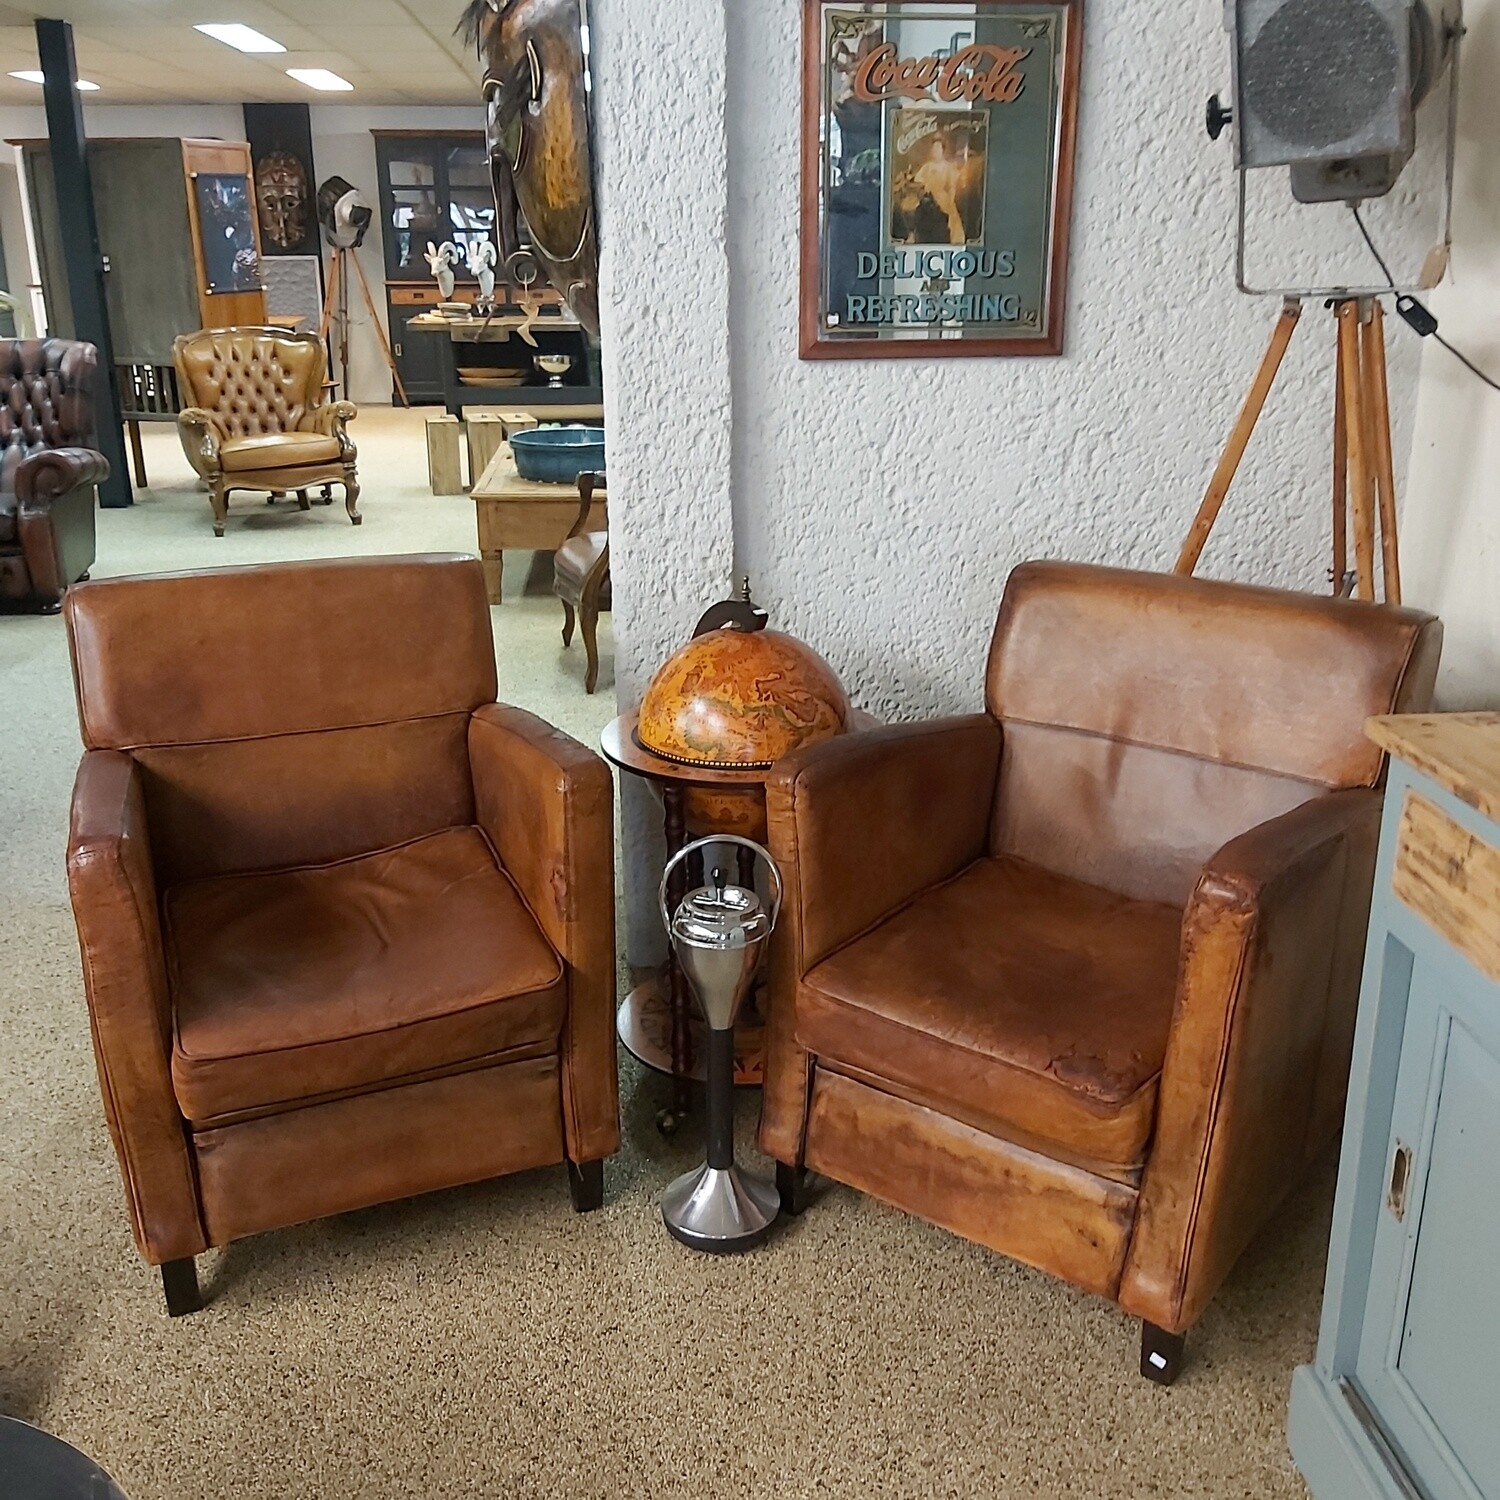 2 Sheep leather chairs